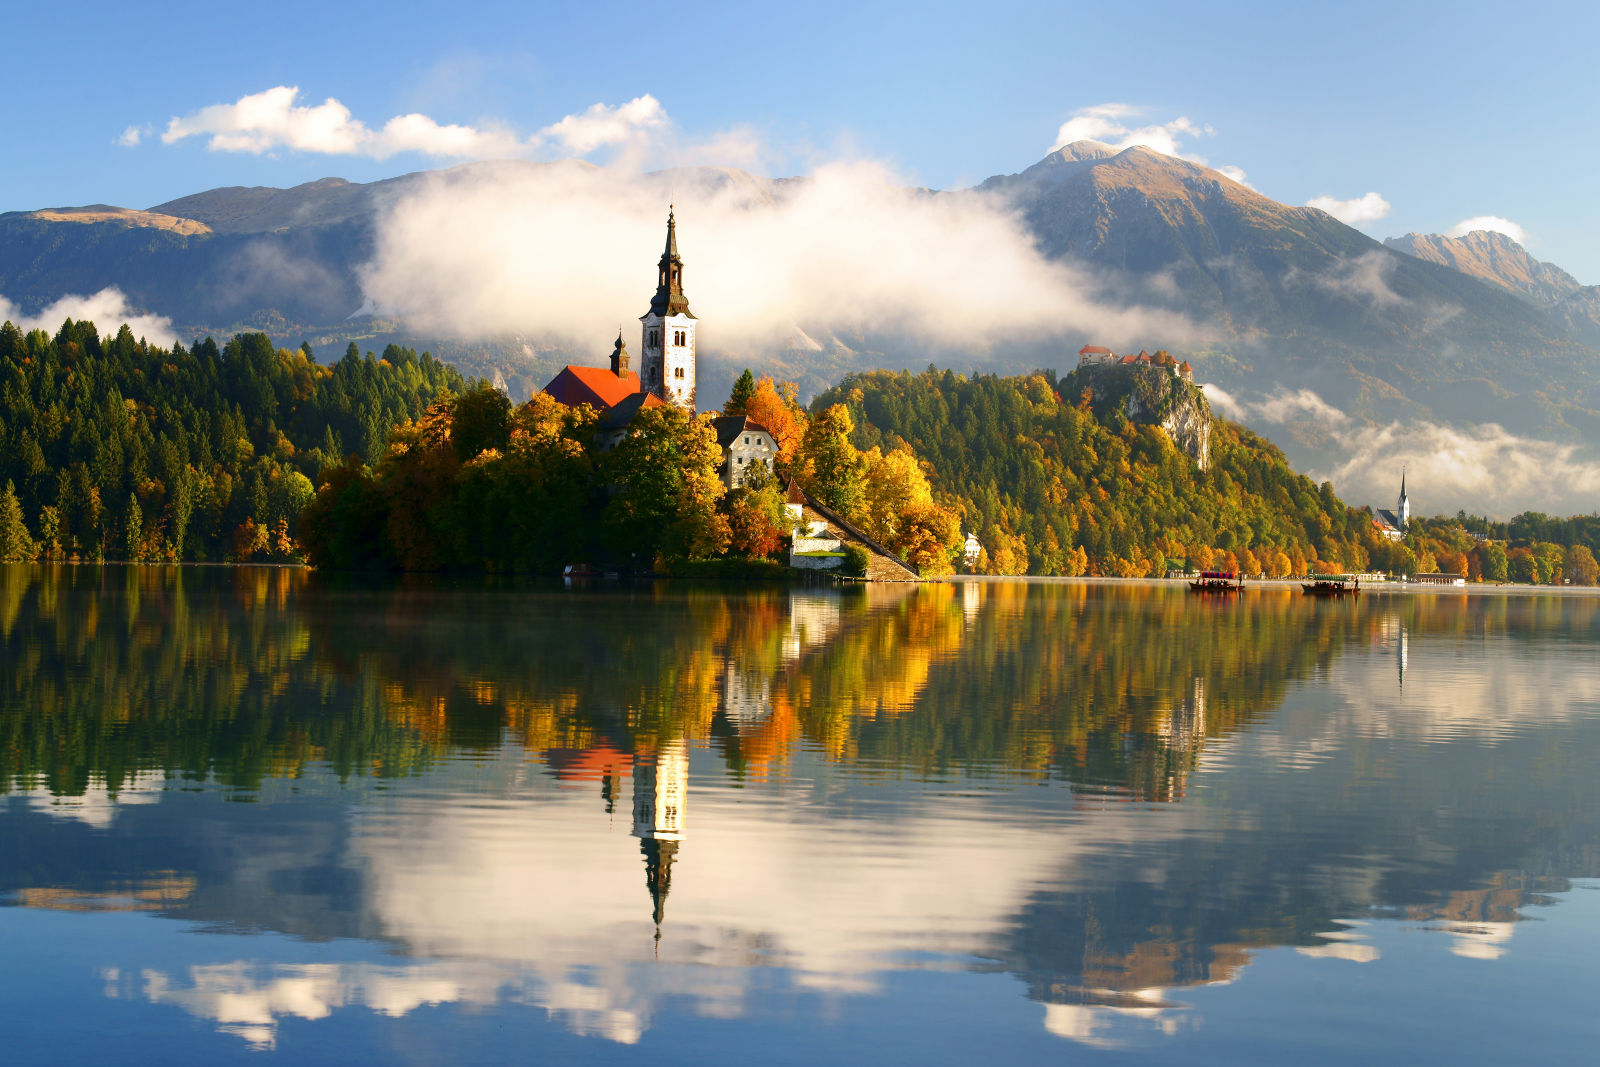 A Photo Gallery With Landscape Photos Of Lake Bled In Slovenia